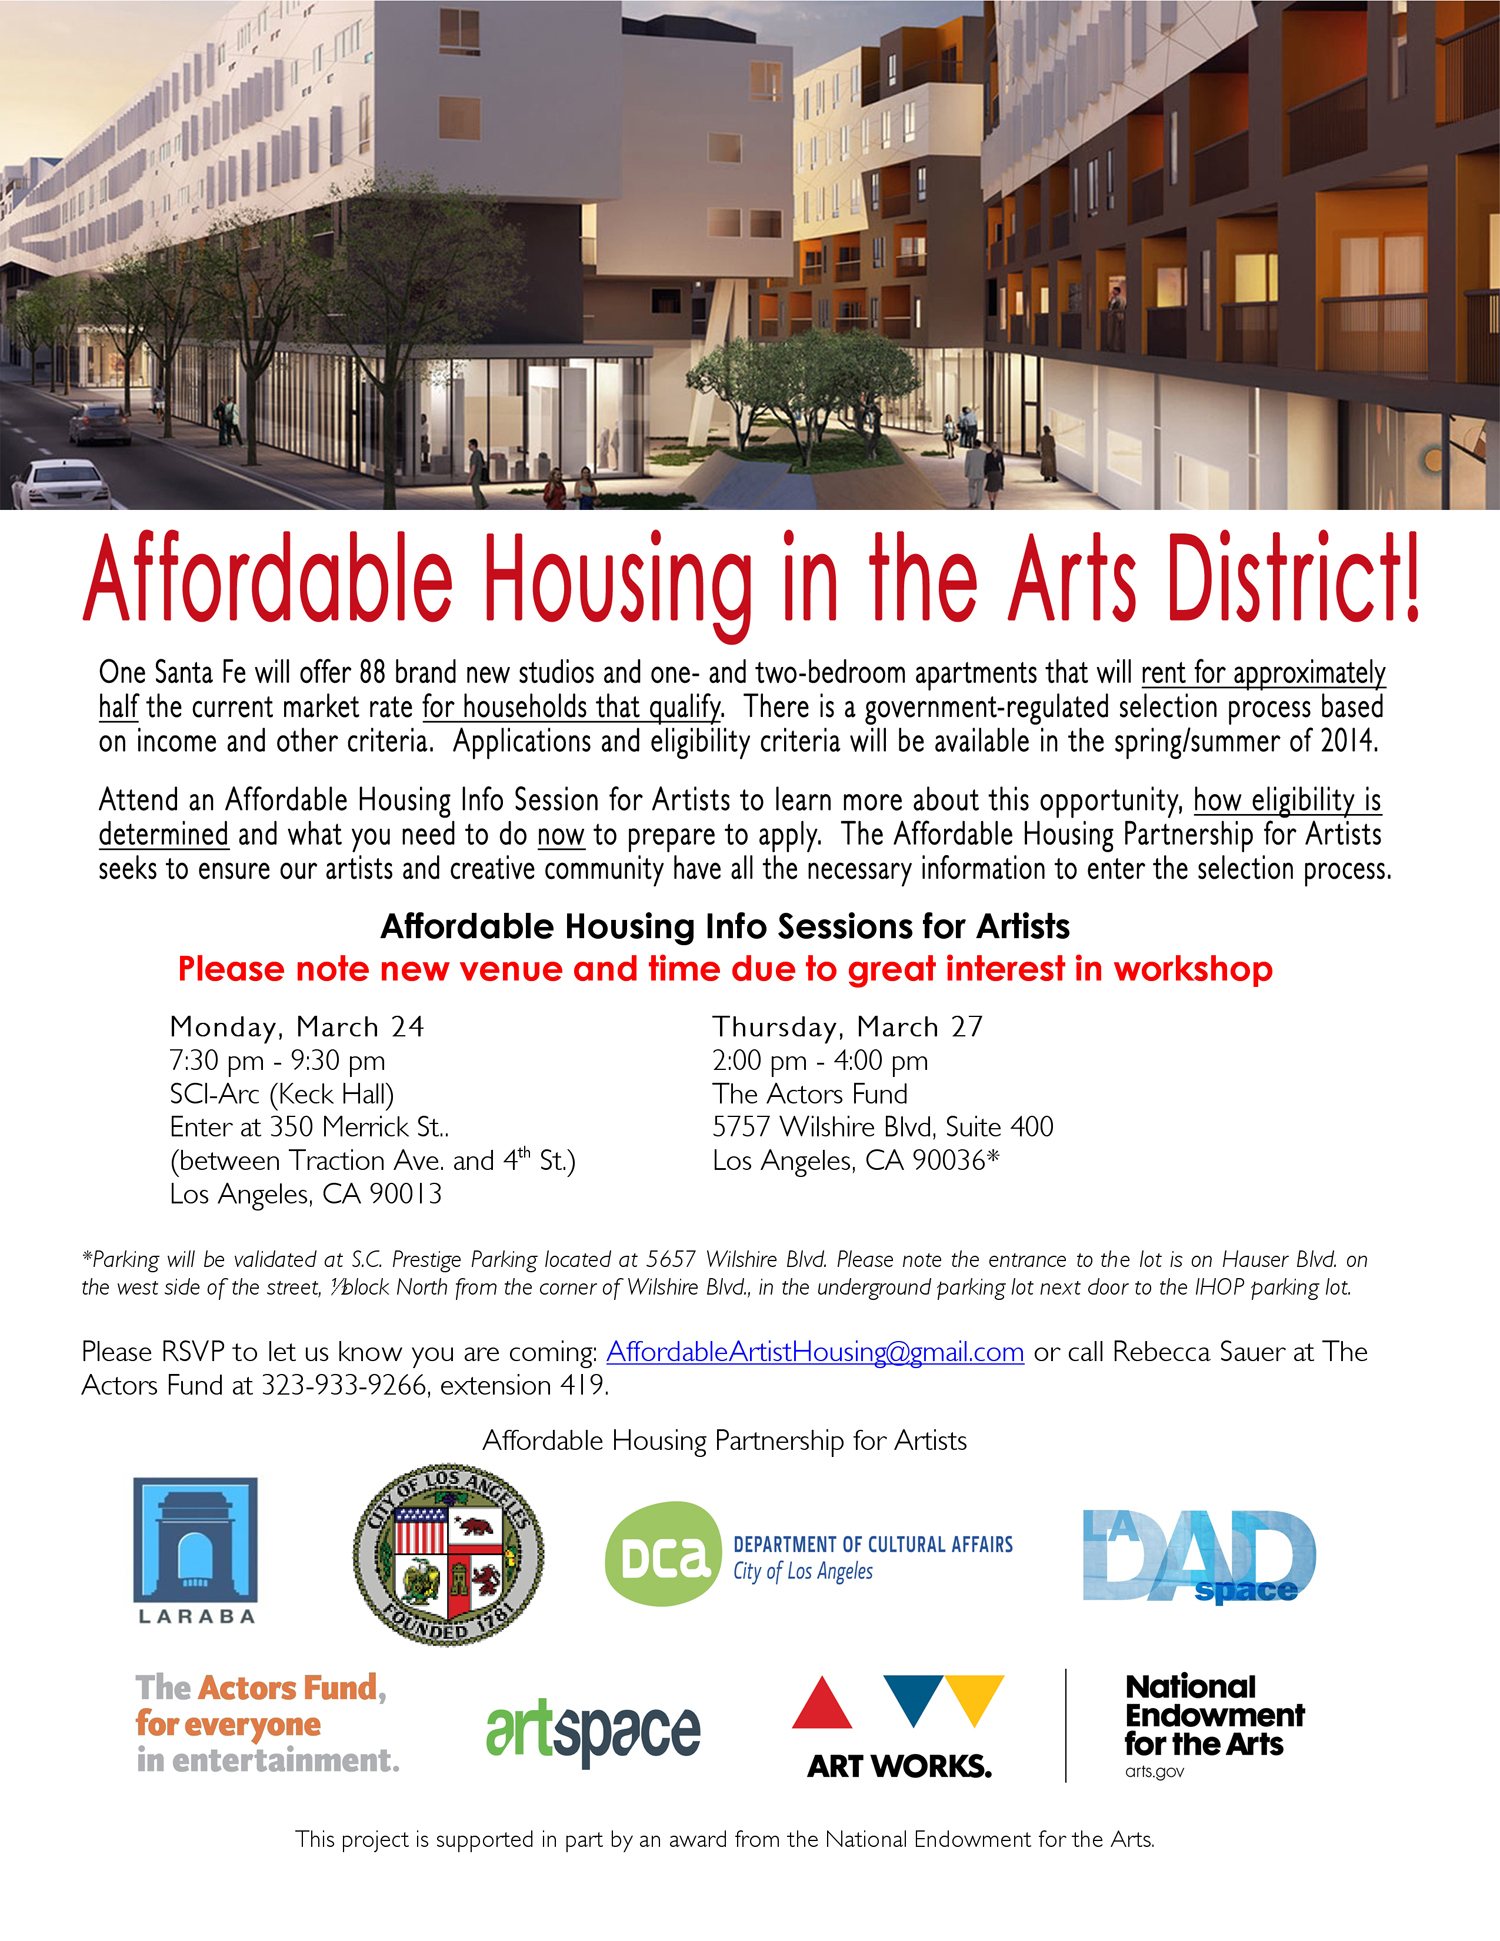 Affordable Housing in the Arts District! - March 15, 2014